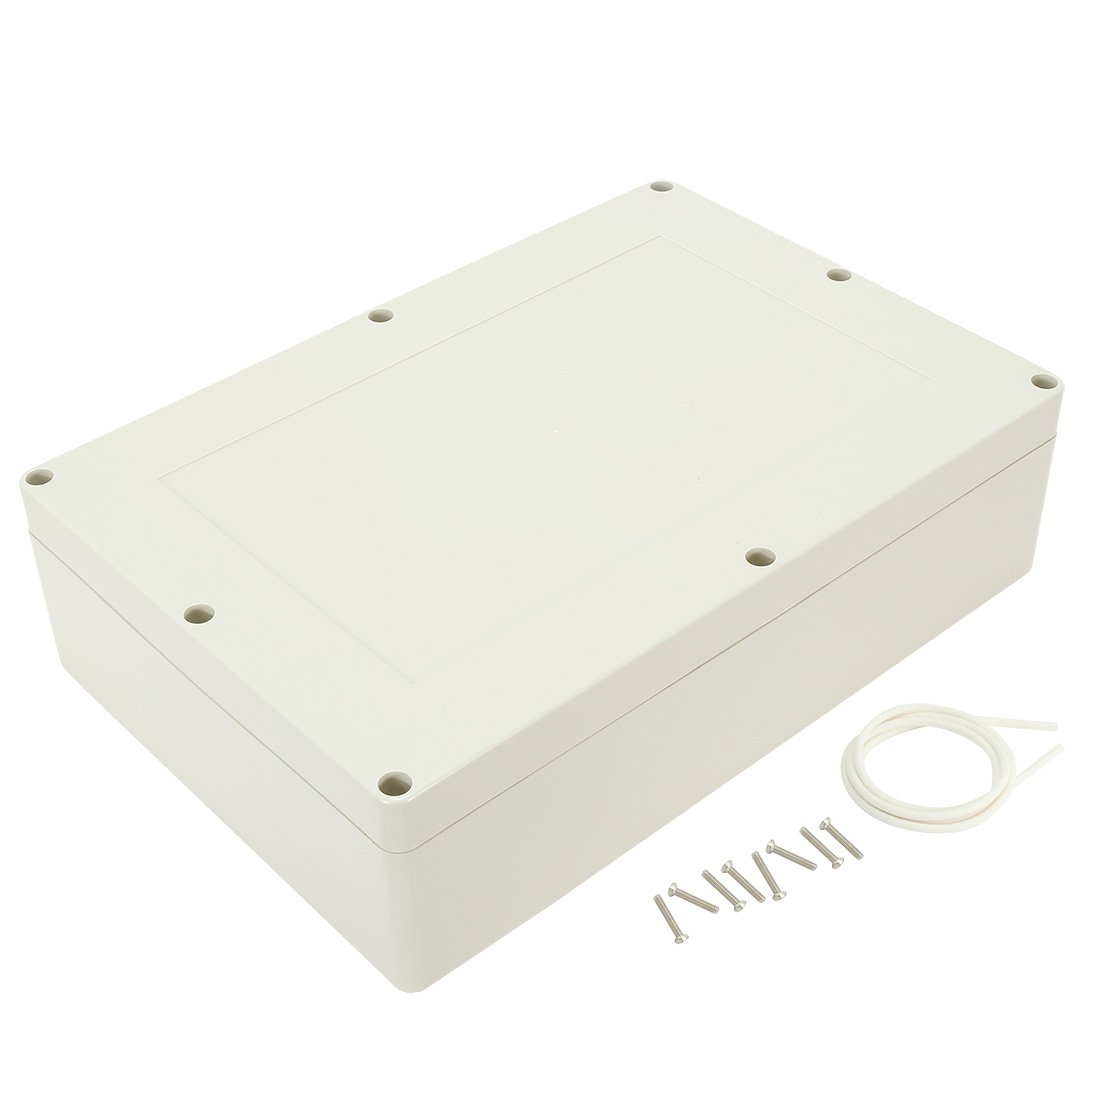 uxcell 15 inches x 10.2 inches x 4.13 inches 380mmx260mmx105mm ABS Junction Box Universal Electric Project Enclosure